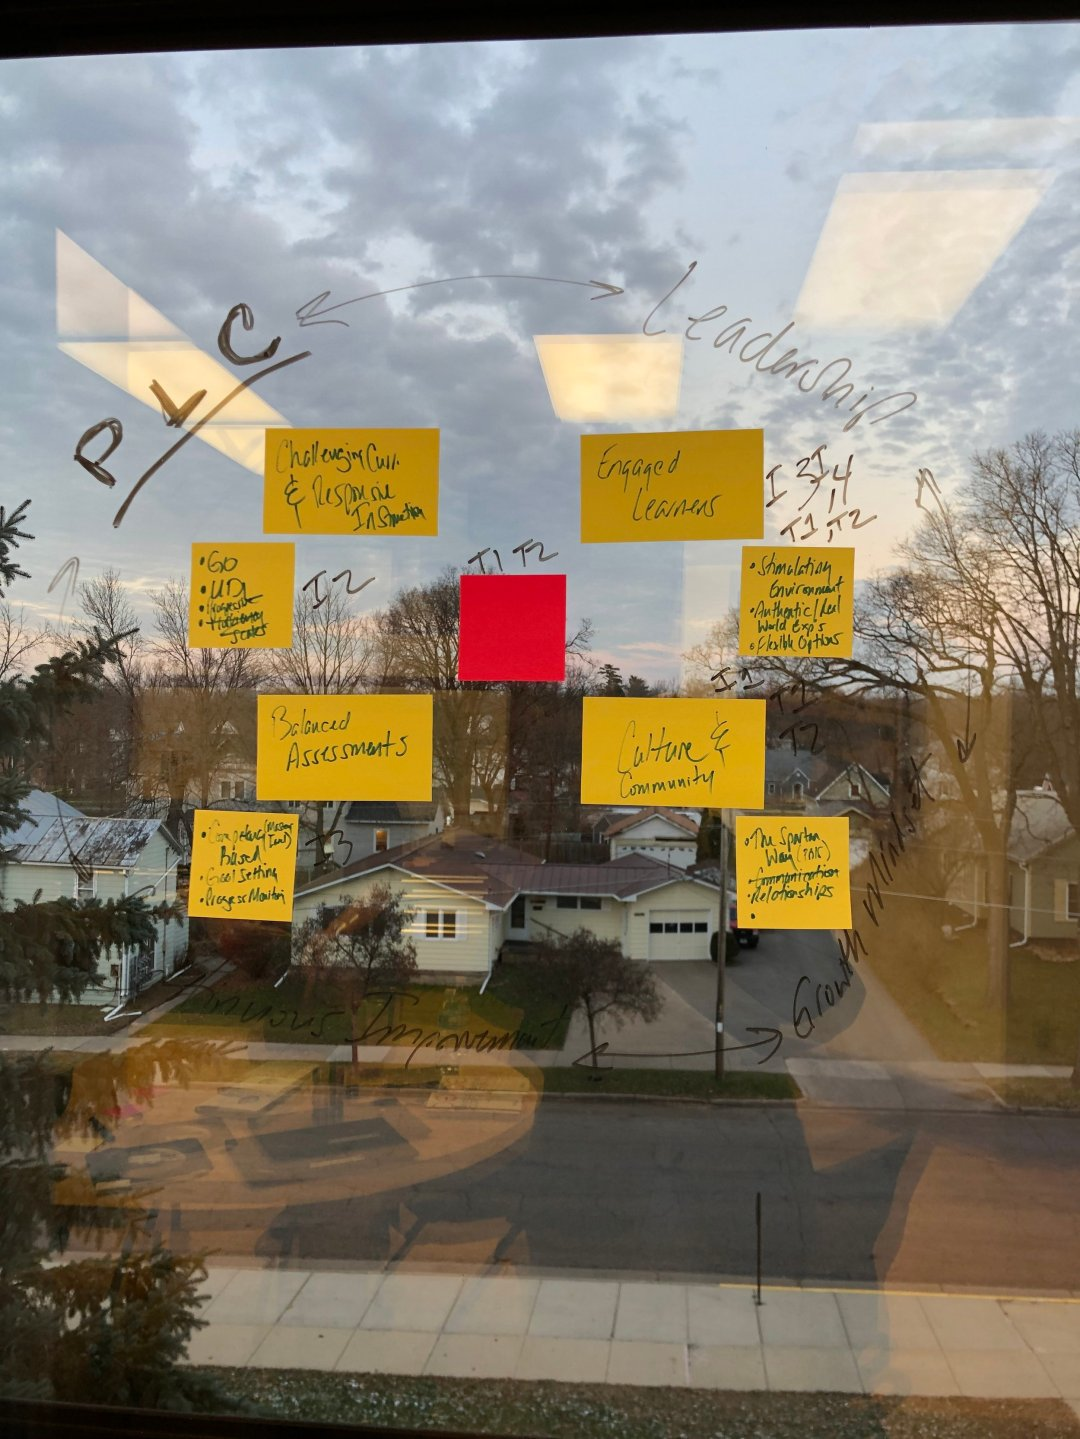 Windows became dry-erase boards during Sparta's instructional model strategy session.